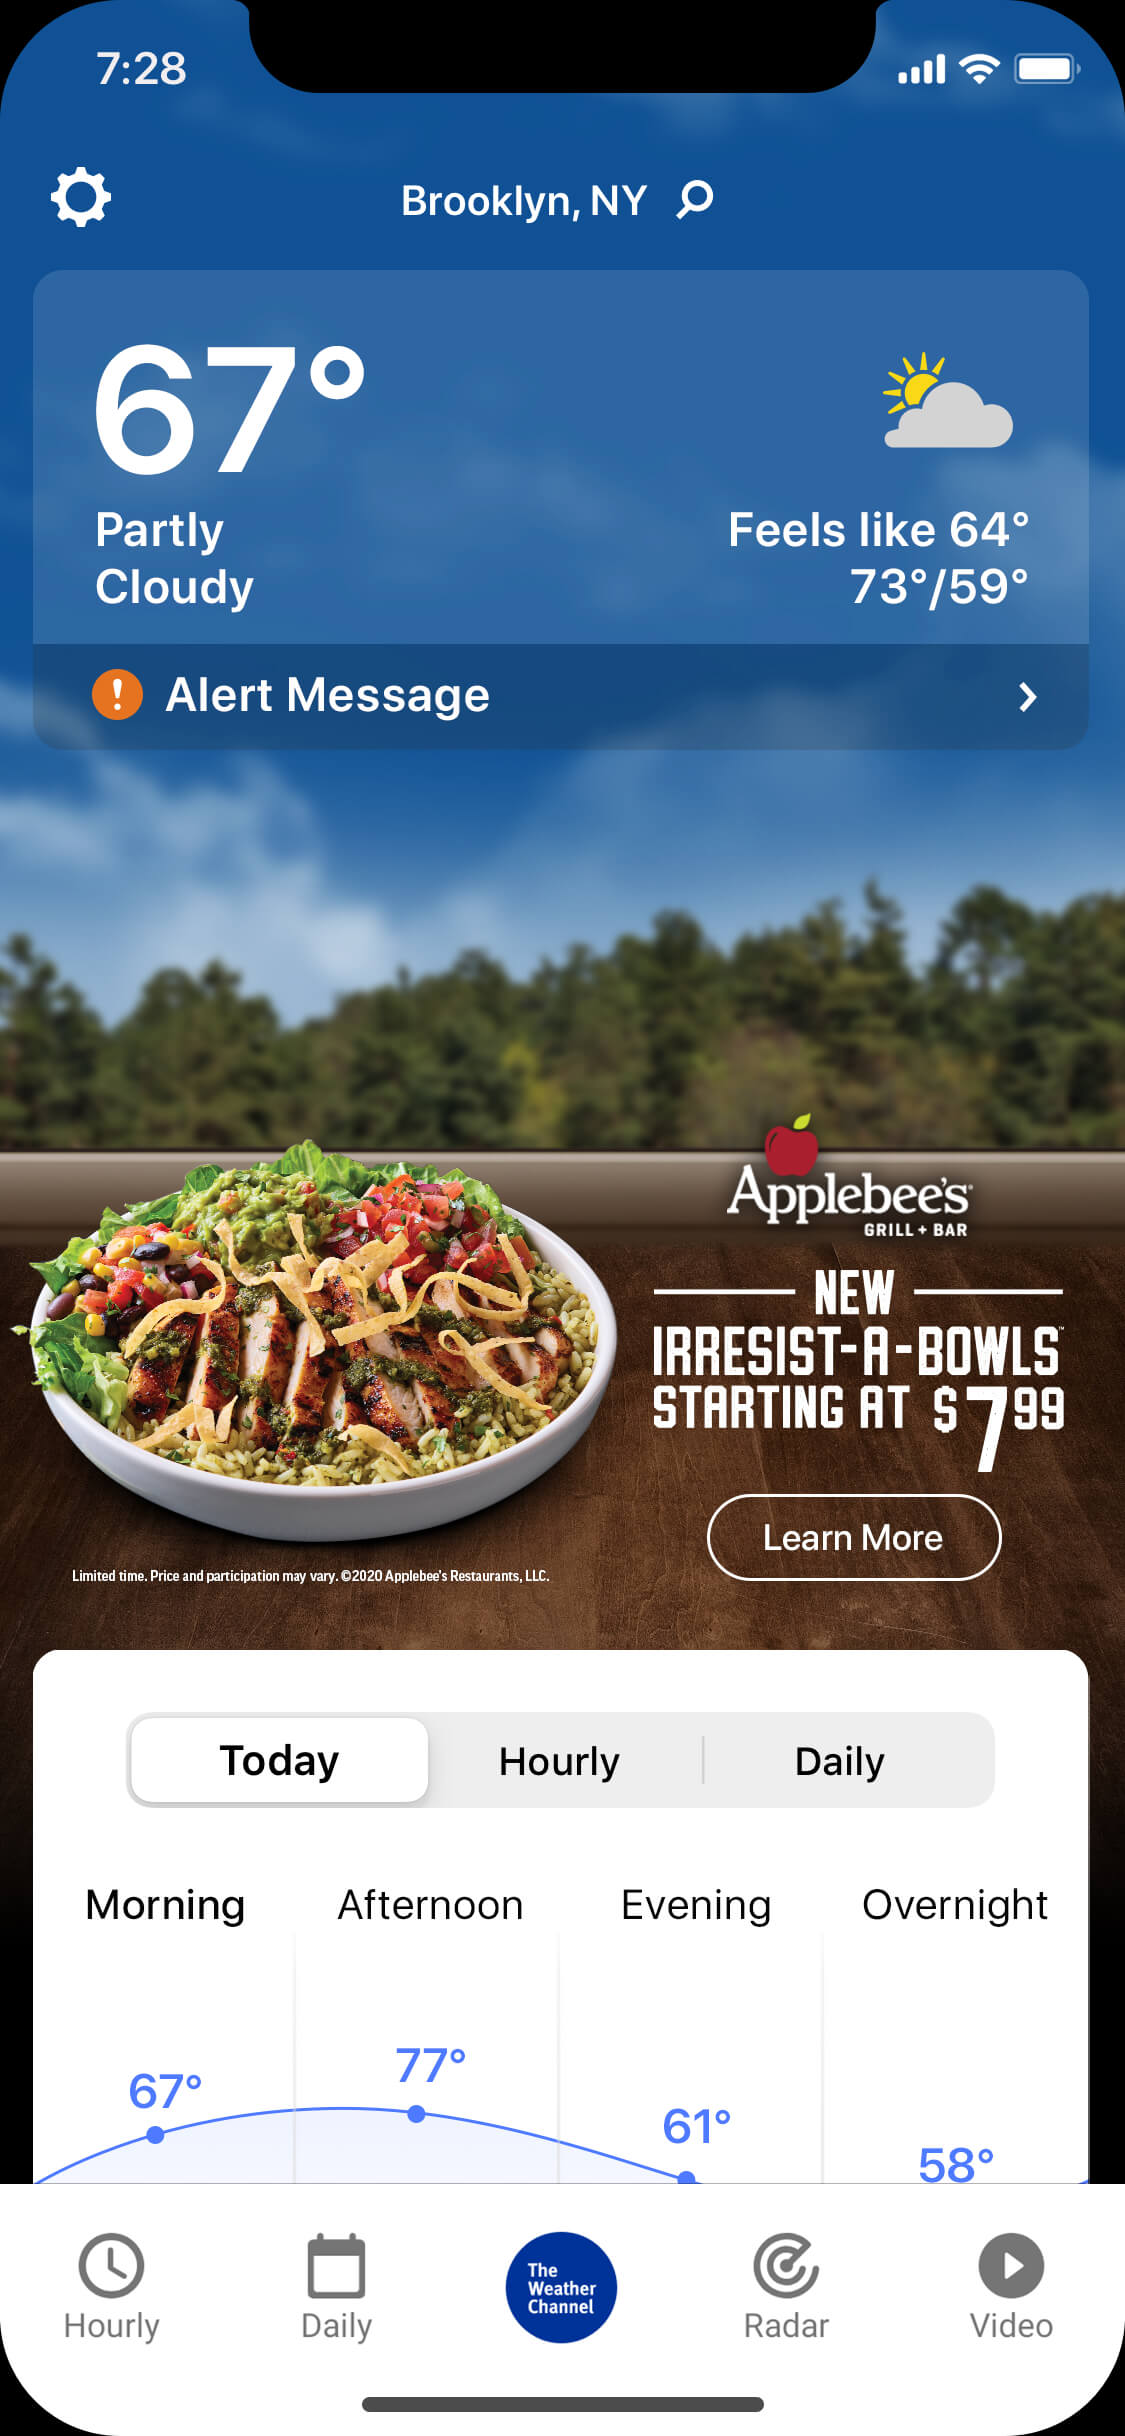 applebees-bowls-im_cloudy-day